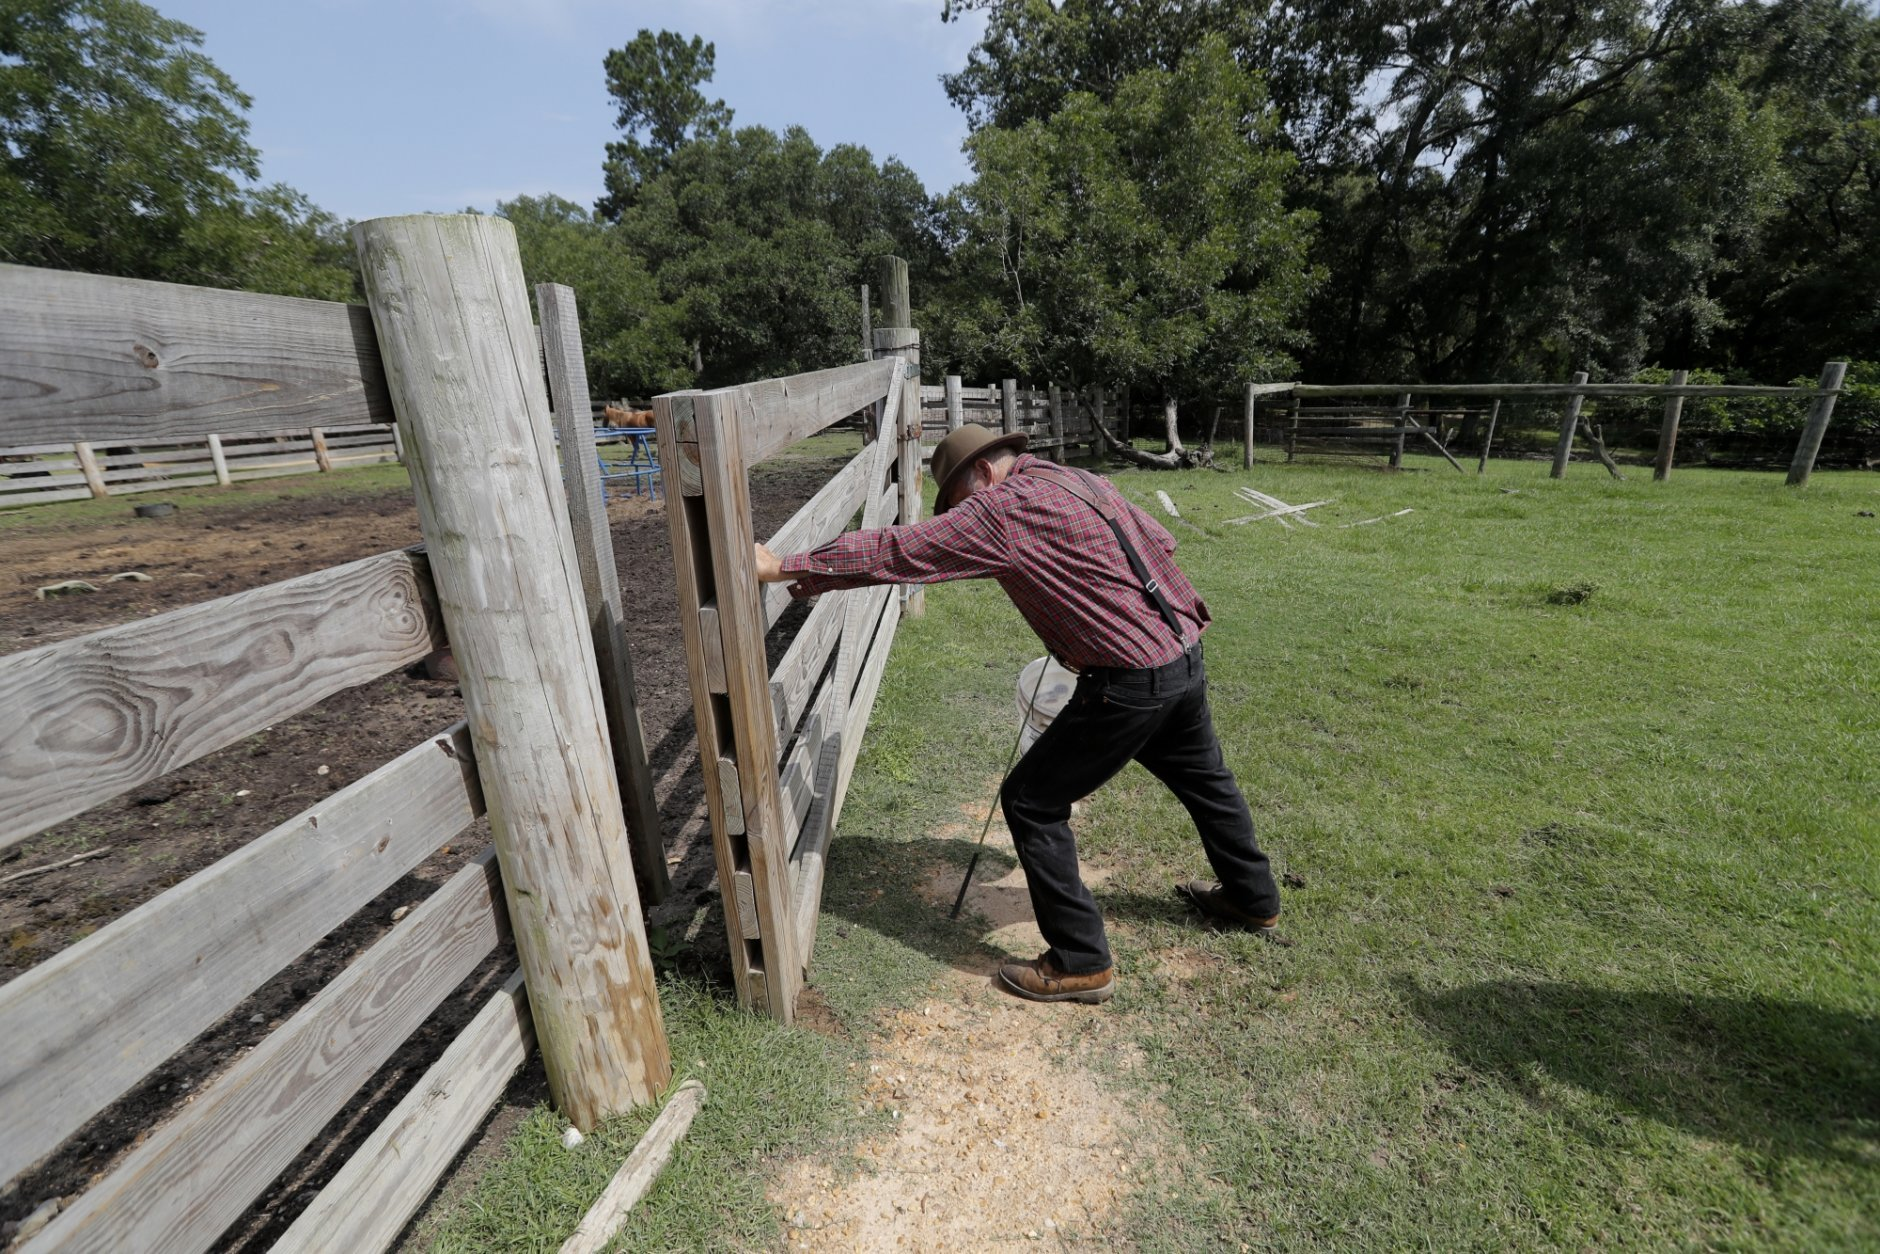 In this July 17, 2018, photo, Bill Frank Brown closes a pen as he walks to feed his horses on his farm in Poplarville, Miss. The farm had been in Brown's family since 1881 and the livestock there, even longer. Brown had three stallions back then, including DeSoto. He called them pine tacky horses. The Texas A&M veterinary school tested samples of the stallions' DNA, and they matched those of Rickman's Choctaws. (AP Photo/Gerald Herbert)